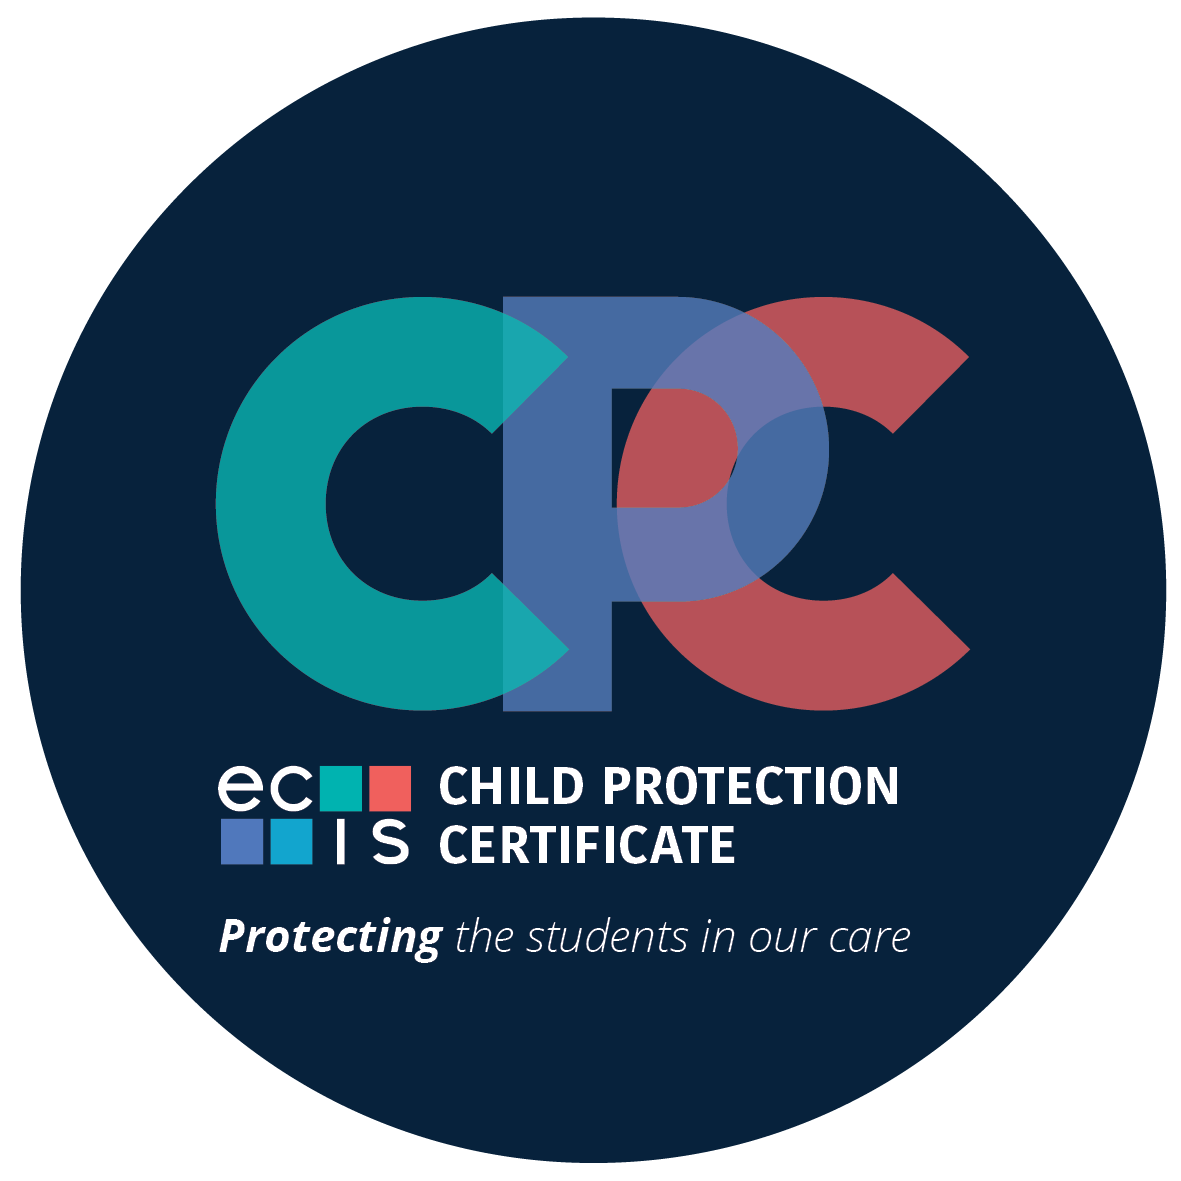 Child Protection Certificate - Educational Collaborative for